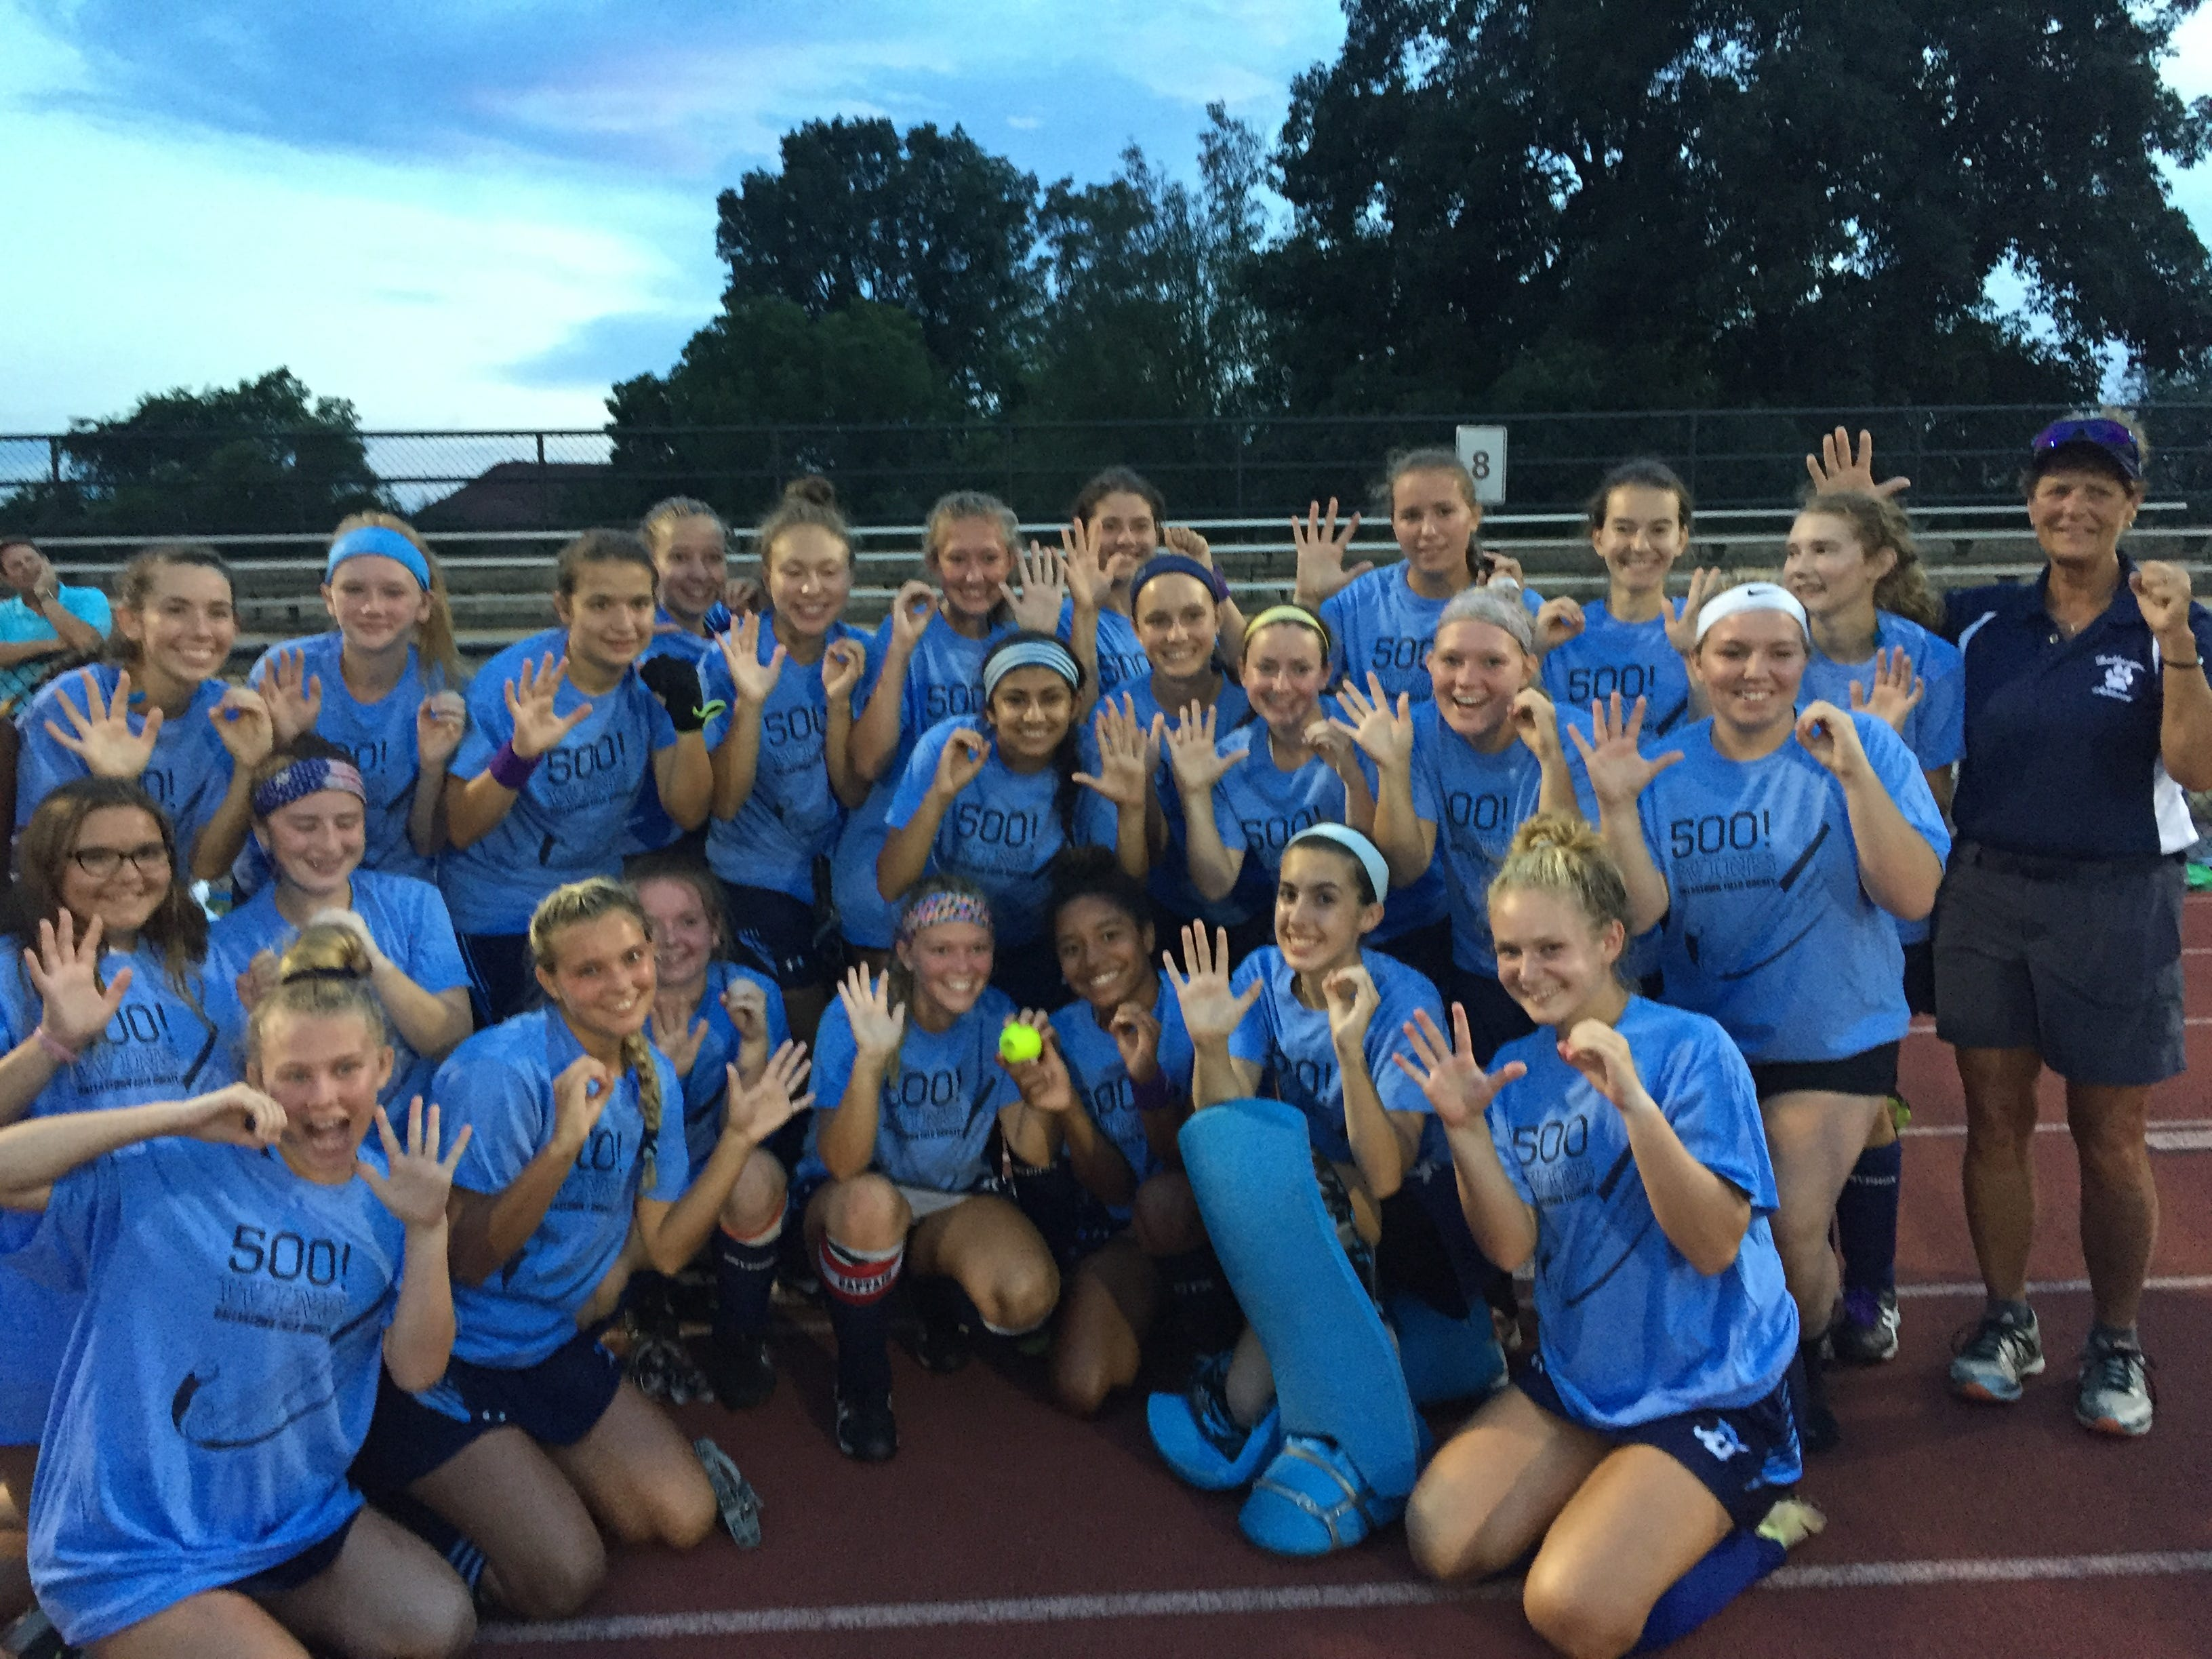 The Dallastown field hockey team poses after coach Jeri Myers earned her 500th win in a 6-0 victory over Dover on Thursday night.